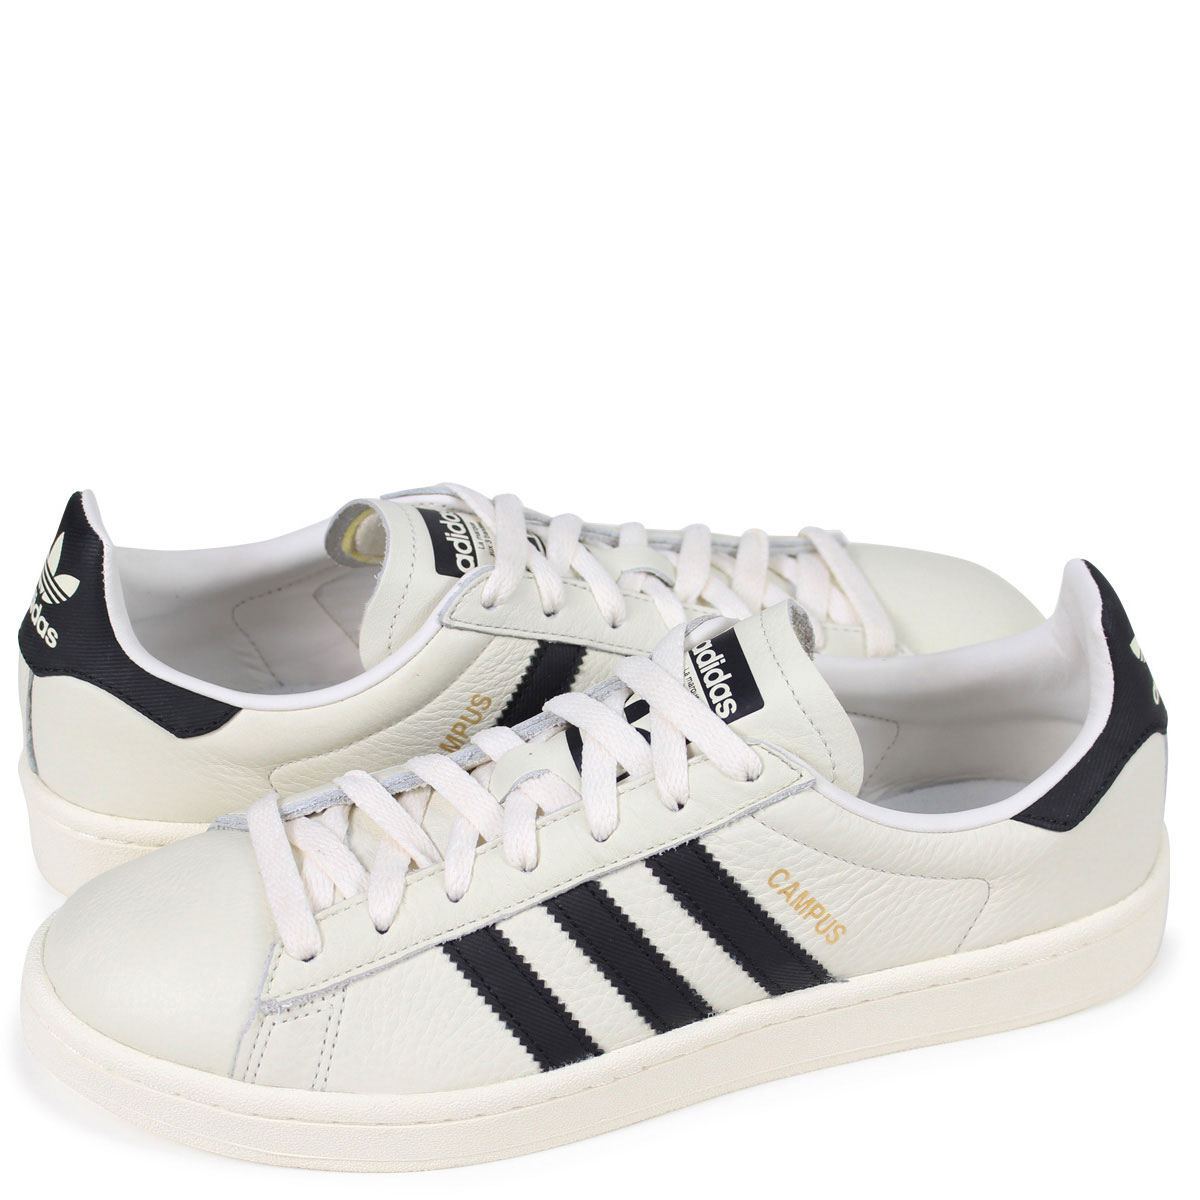 Gap Originals Men Campus Sneakers White Cq2070 Dis Adidas yfg6Yb7